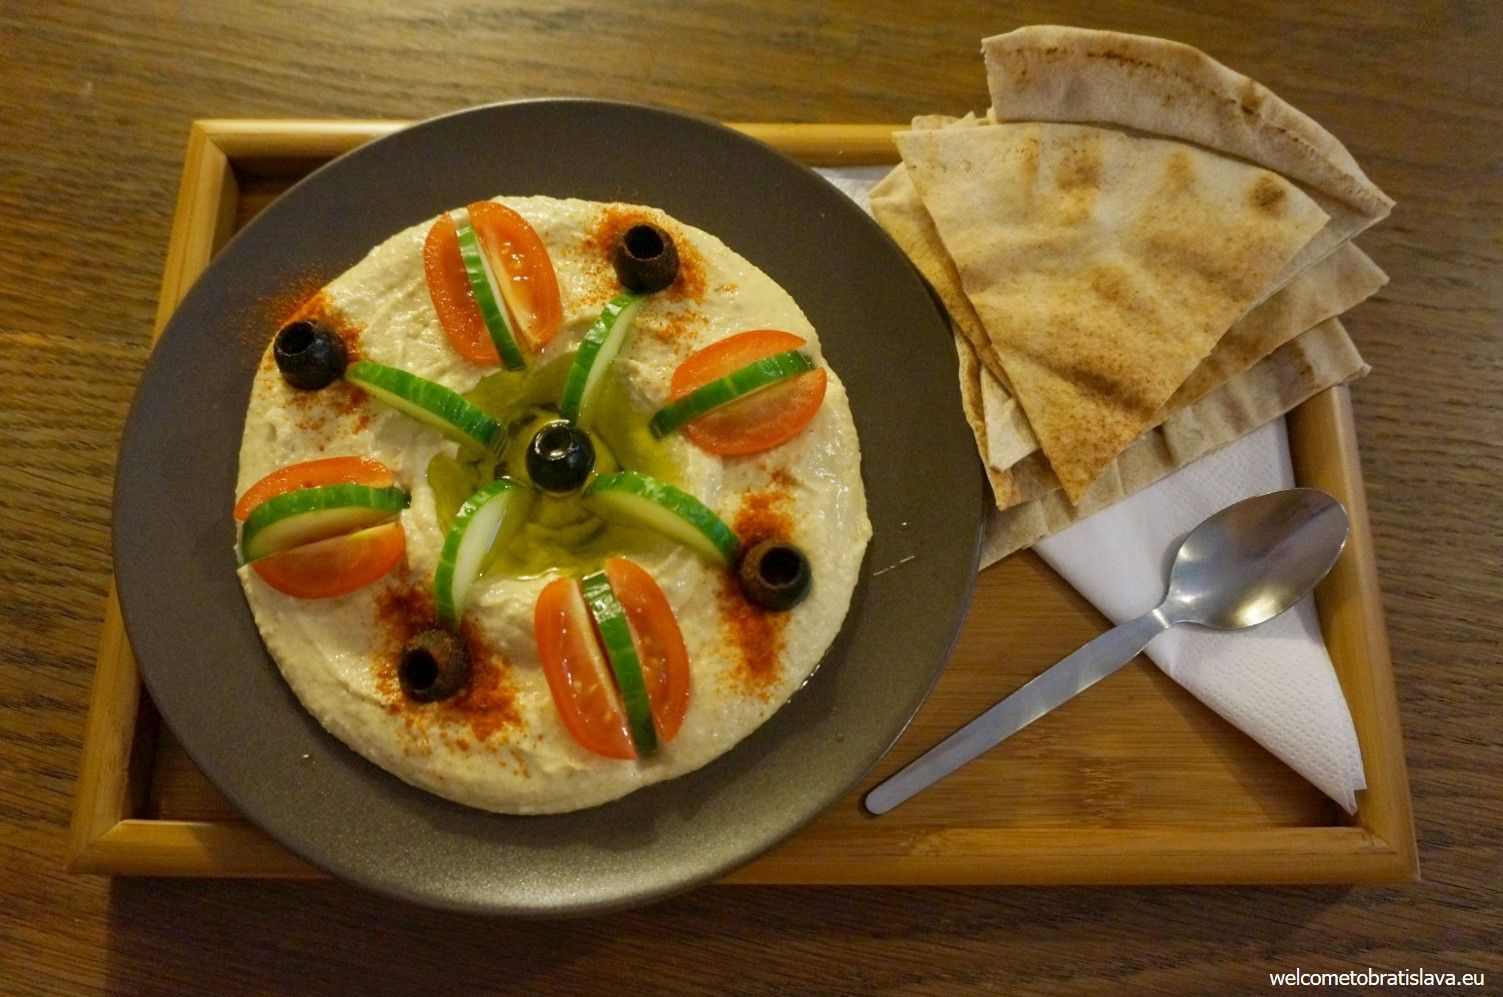 The best hummus in town!